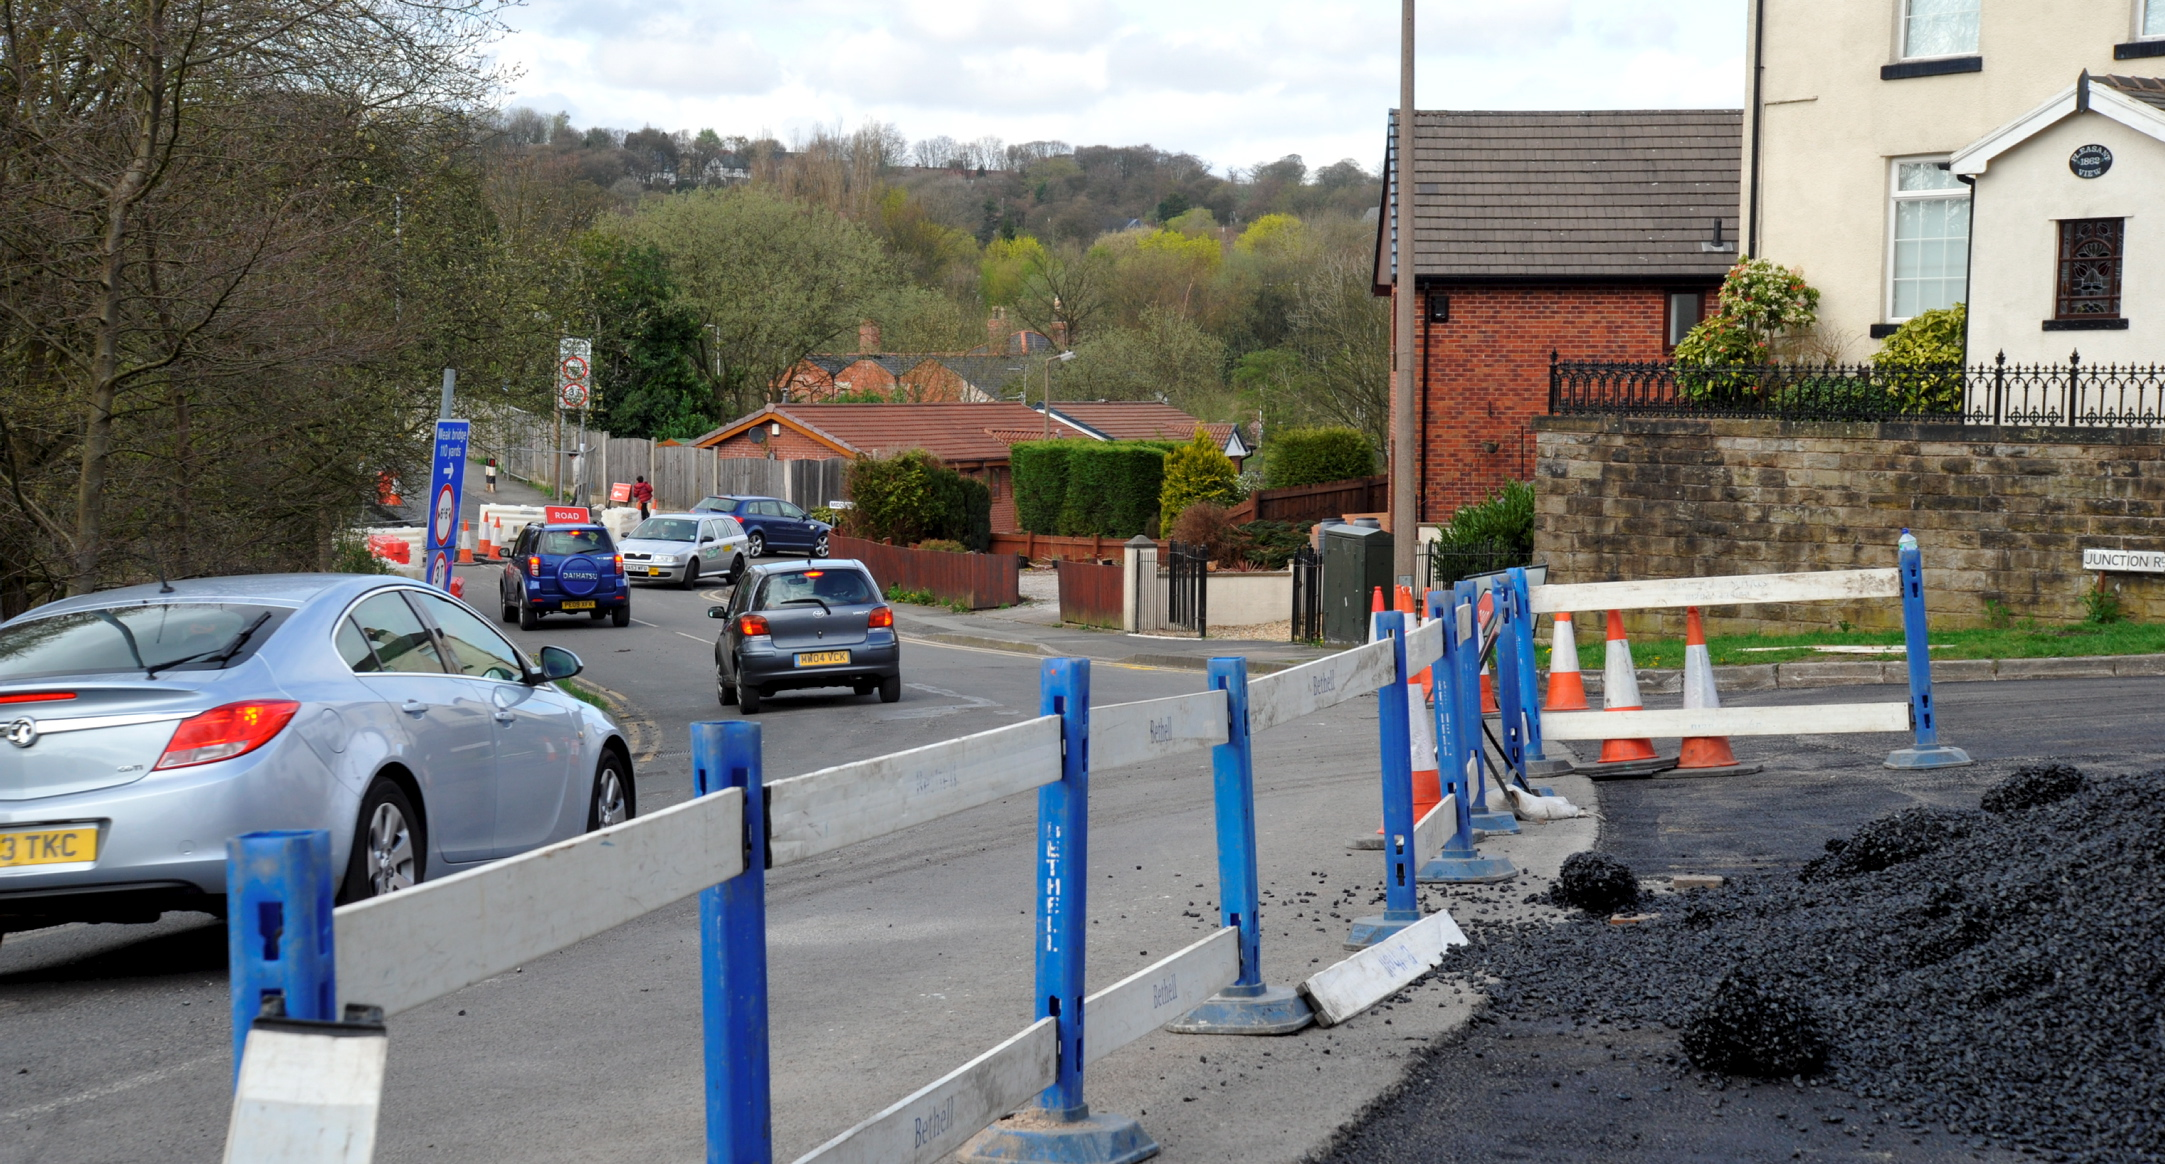 Roadworks causing traffic chaos in Lostock